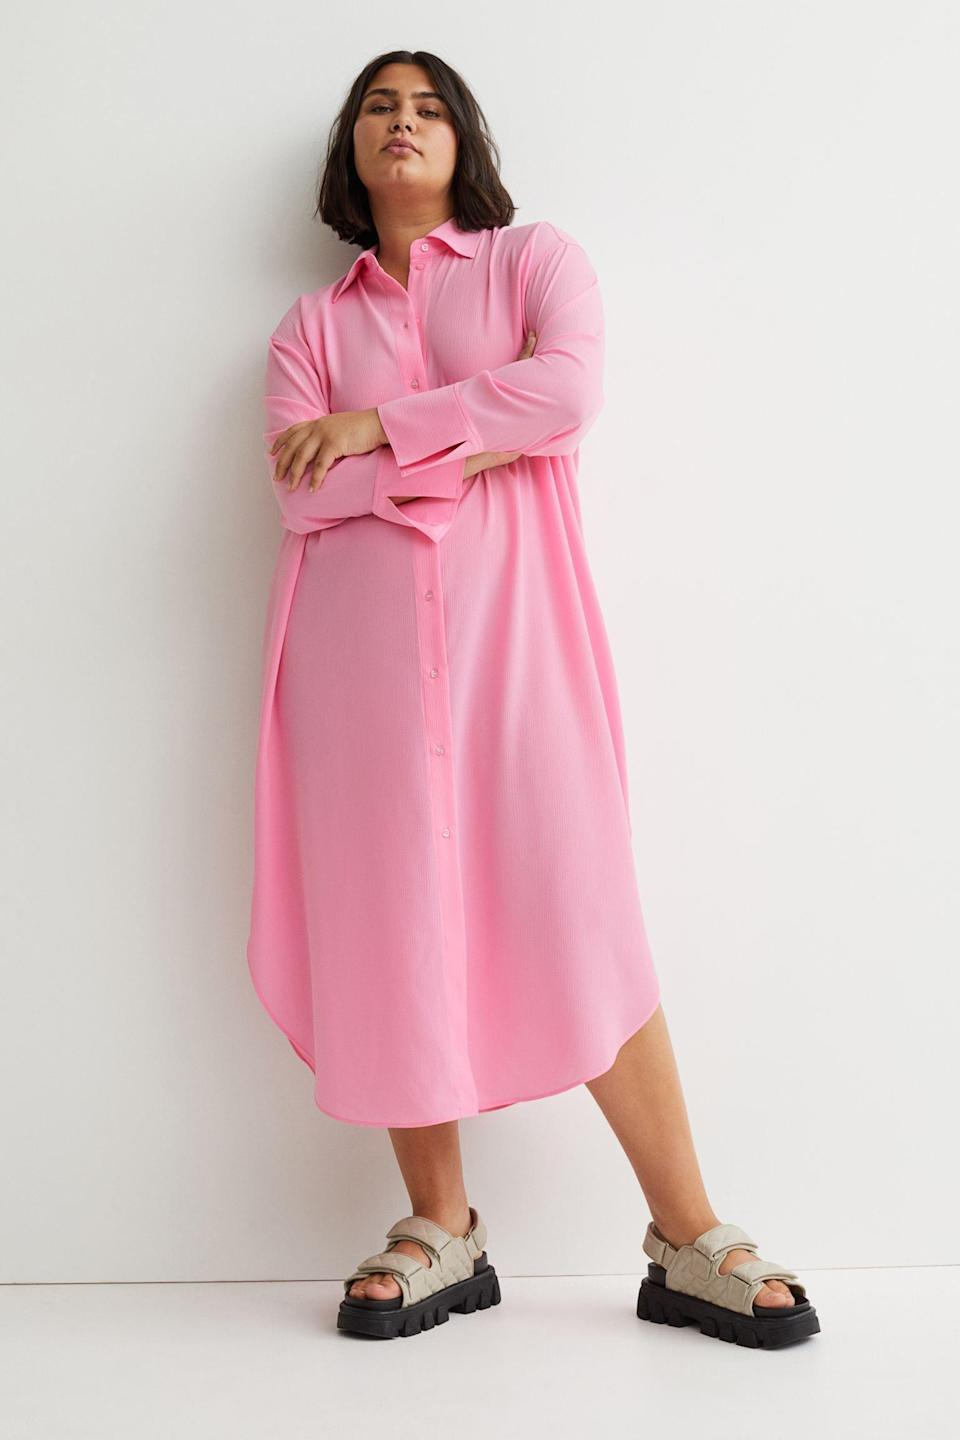 <p>This <span>H&amp;M+ Shirt Dress</span> ($30) is the most comfortable yet put-together thing you'll slip on any day. It looks lightweight and easy to style. If you have to step out, just add some slides and a tote for a cool girl about town look.</p>